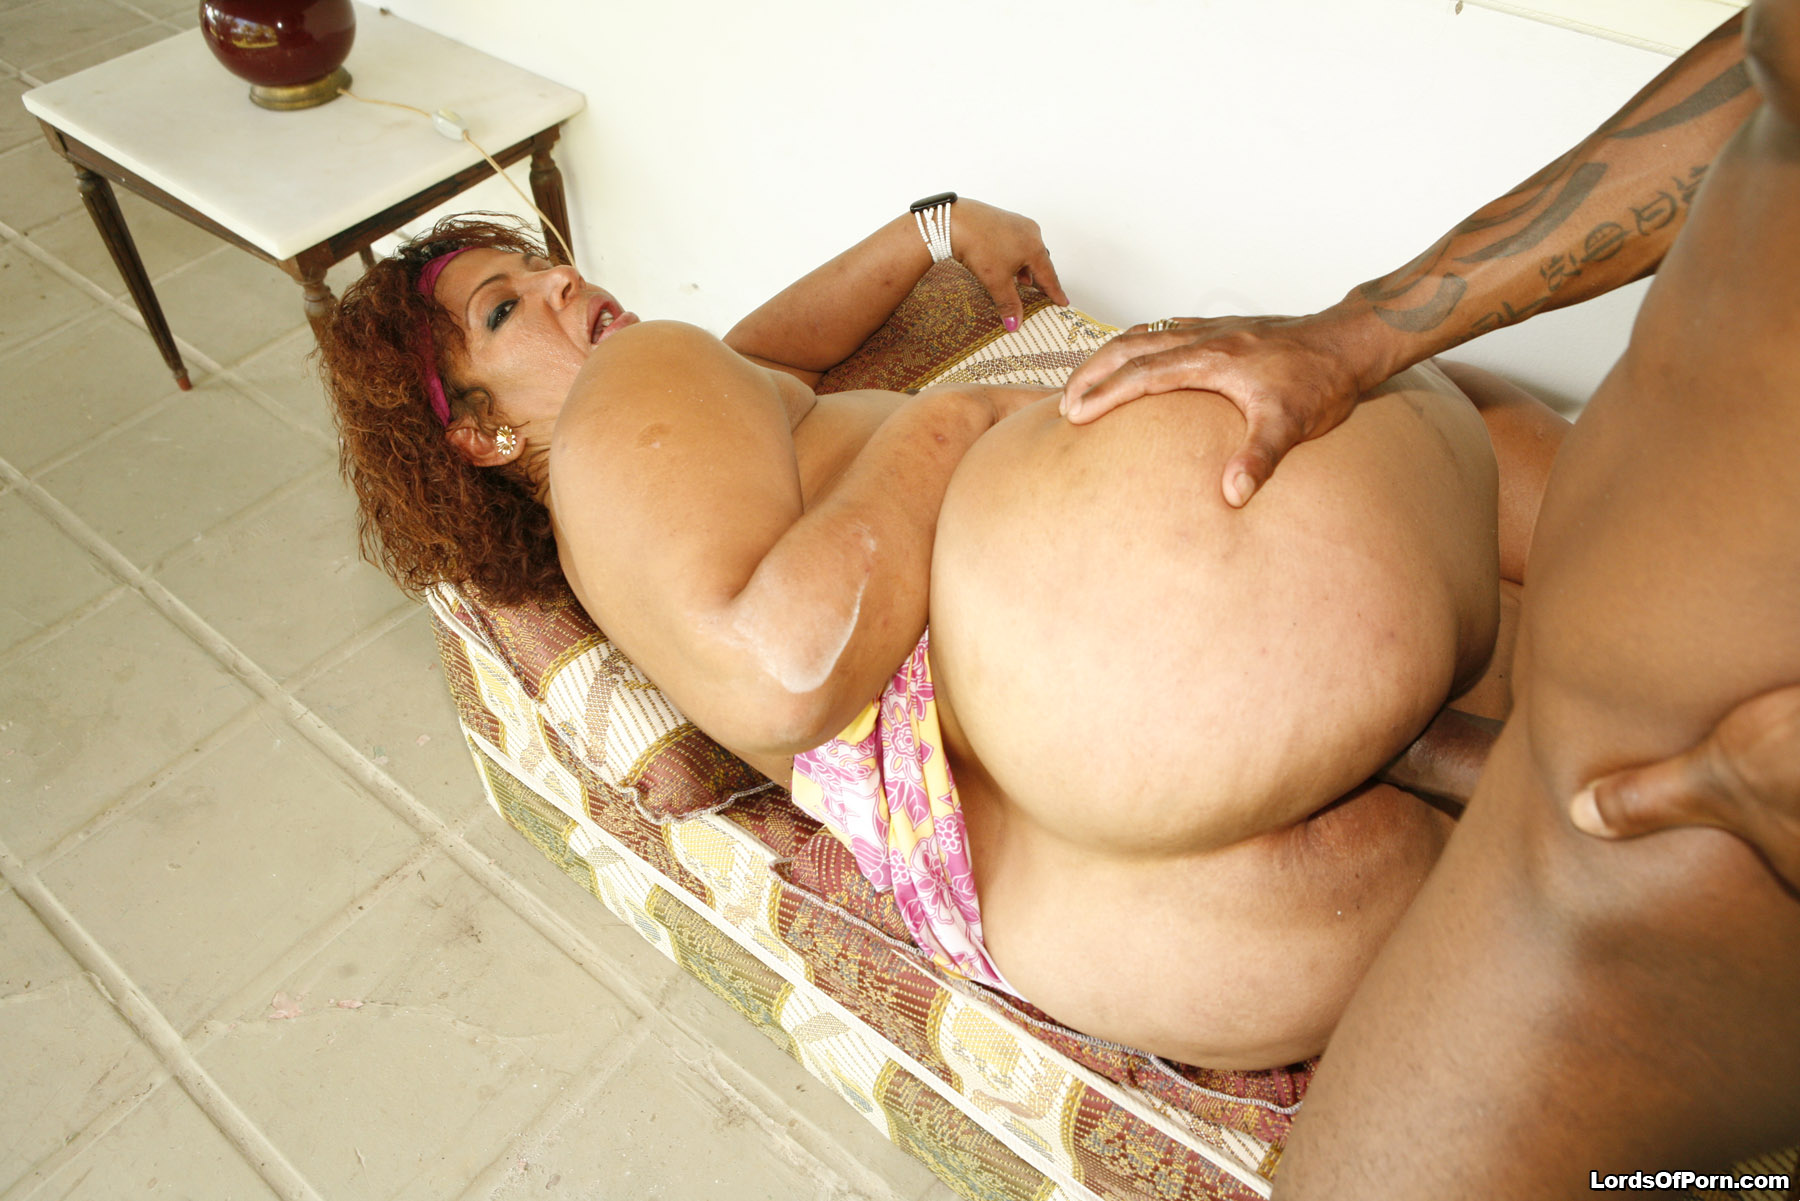 Bbw Huge Ass Riding Dildo